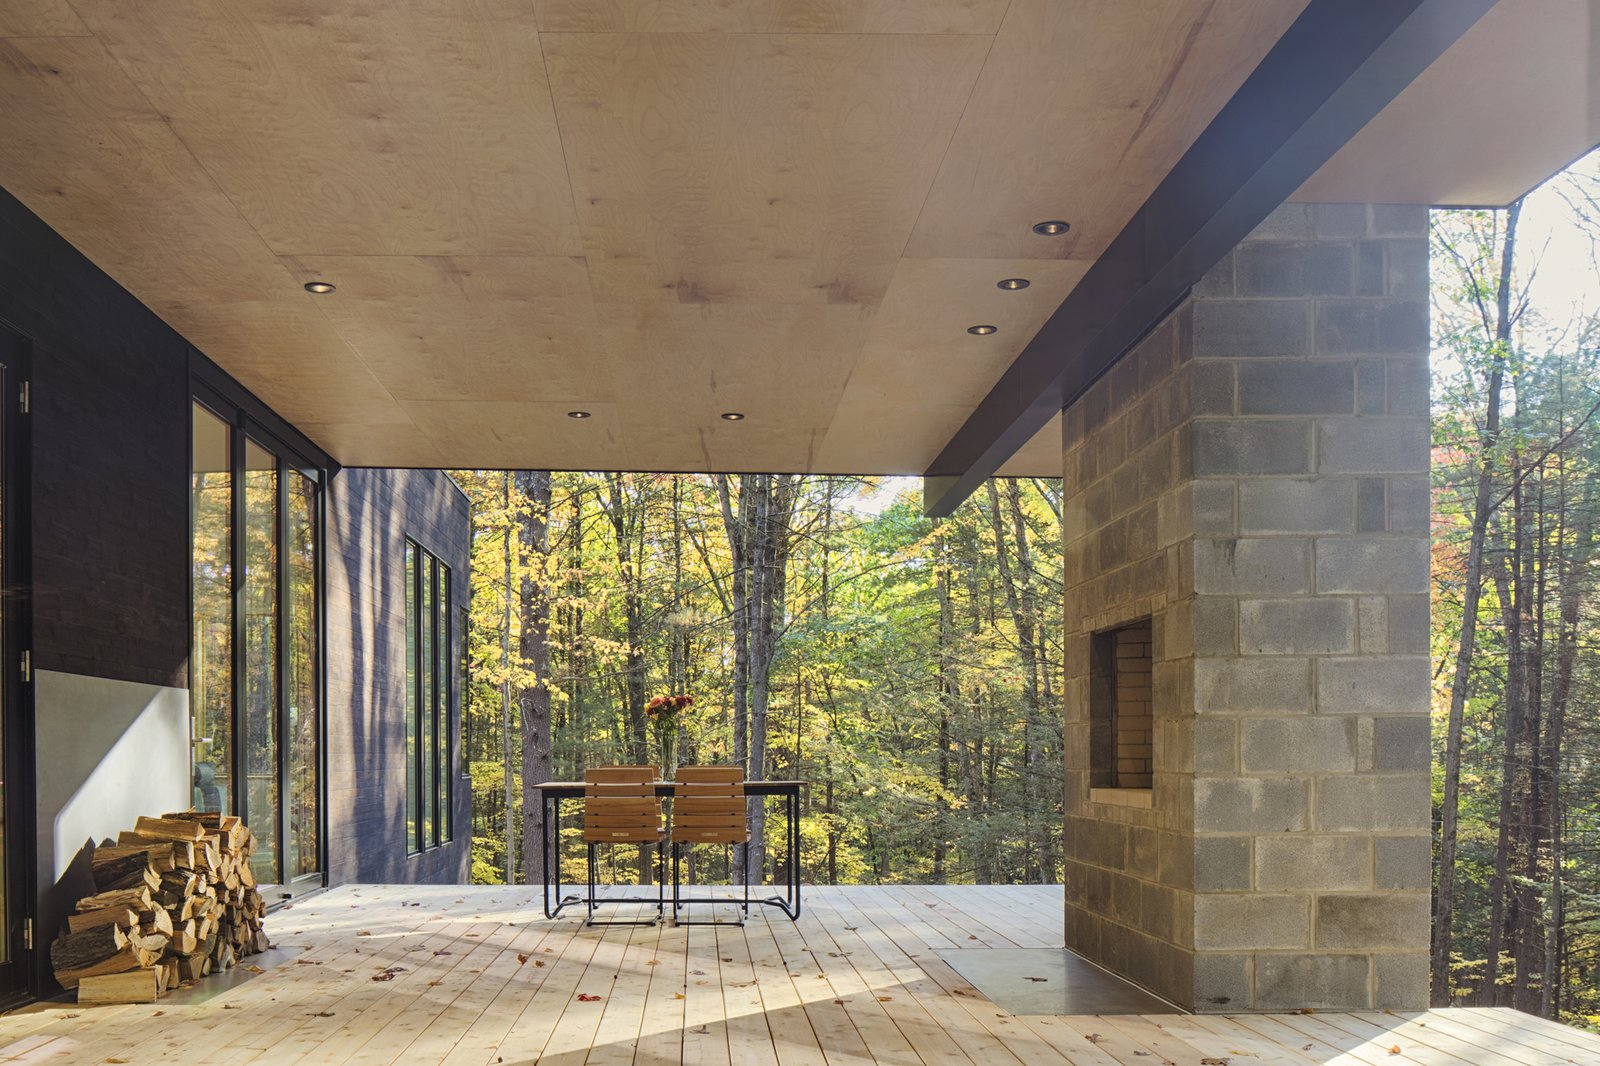 Outdoor, Decking Patio, Porch, Deck, Small Patio, Porch, Deck, Back Yard, Trees, and Wood Patio, Porch, Deck  TinkerBox